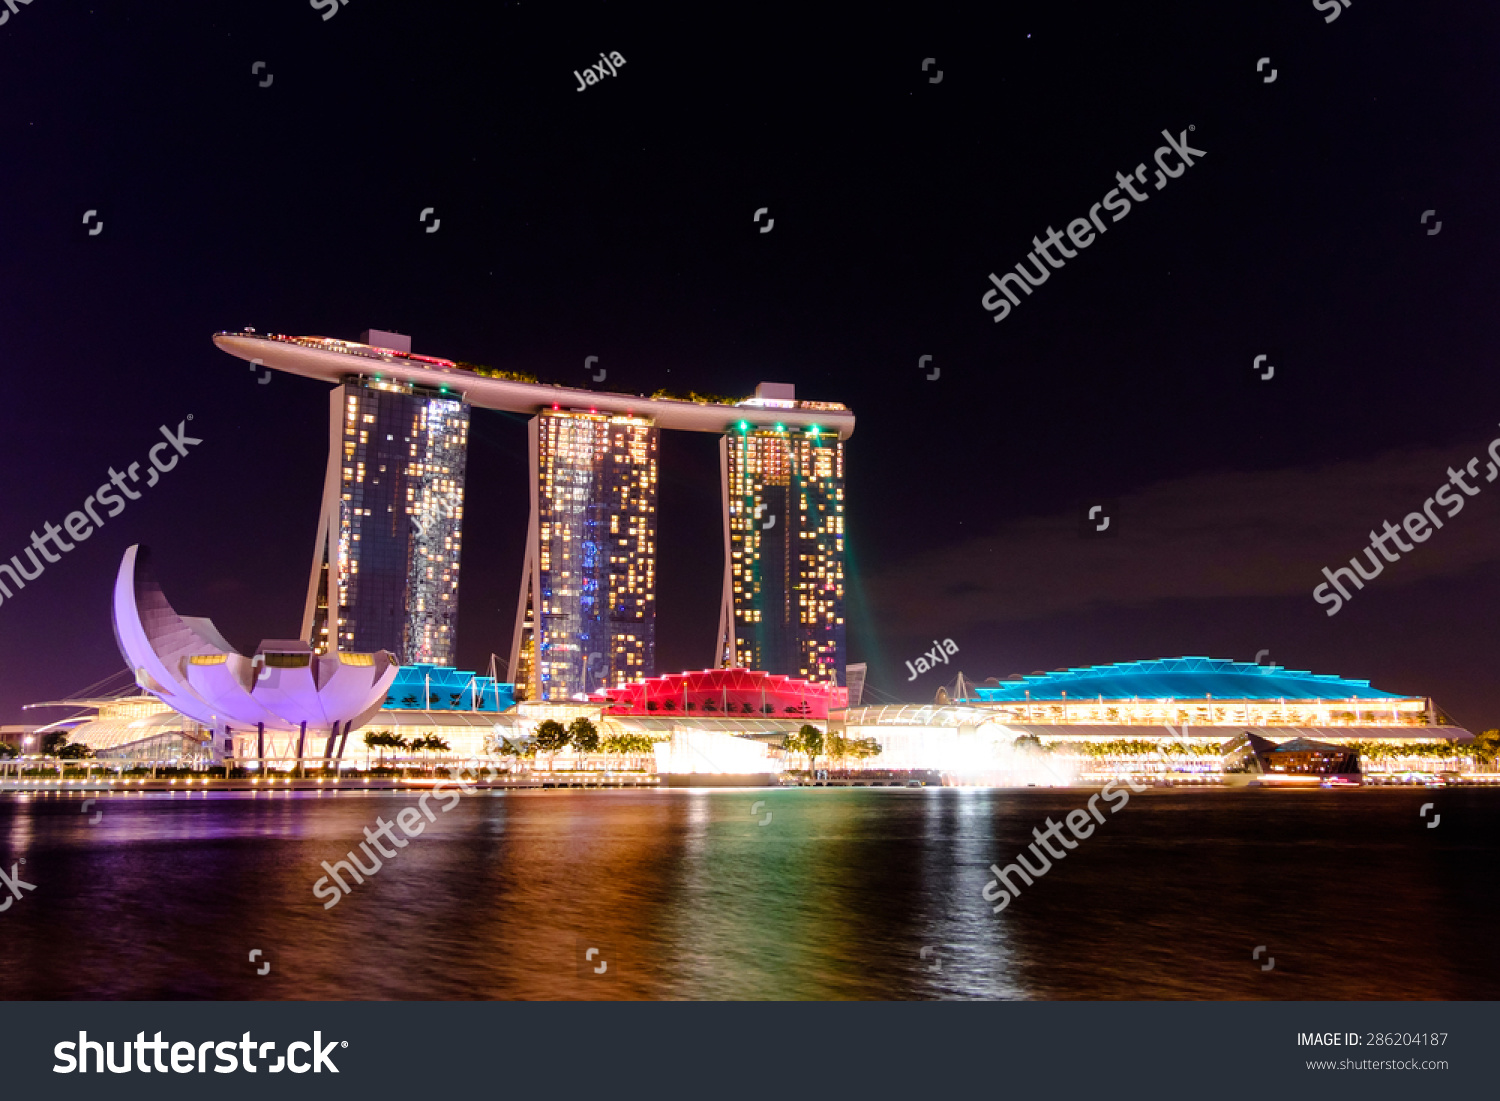 Home - Marina Bay